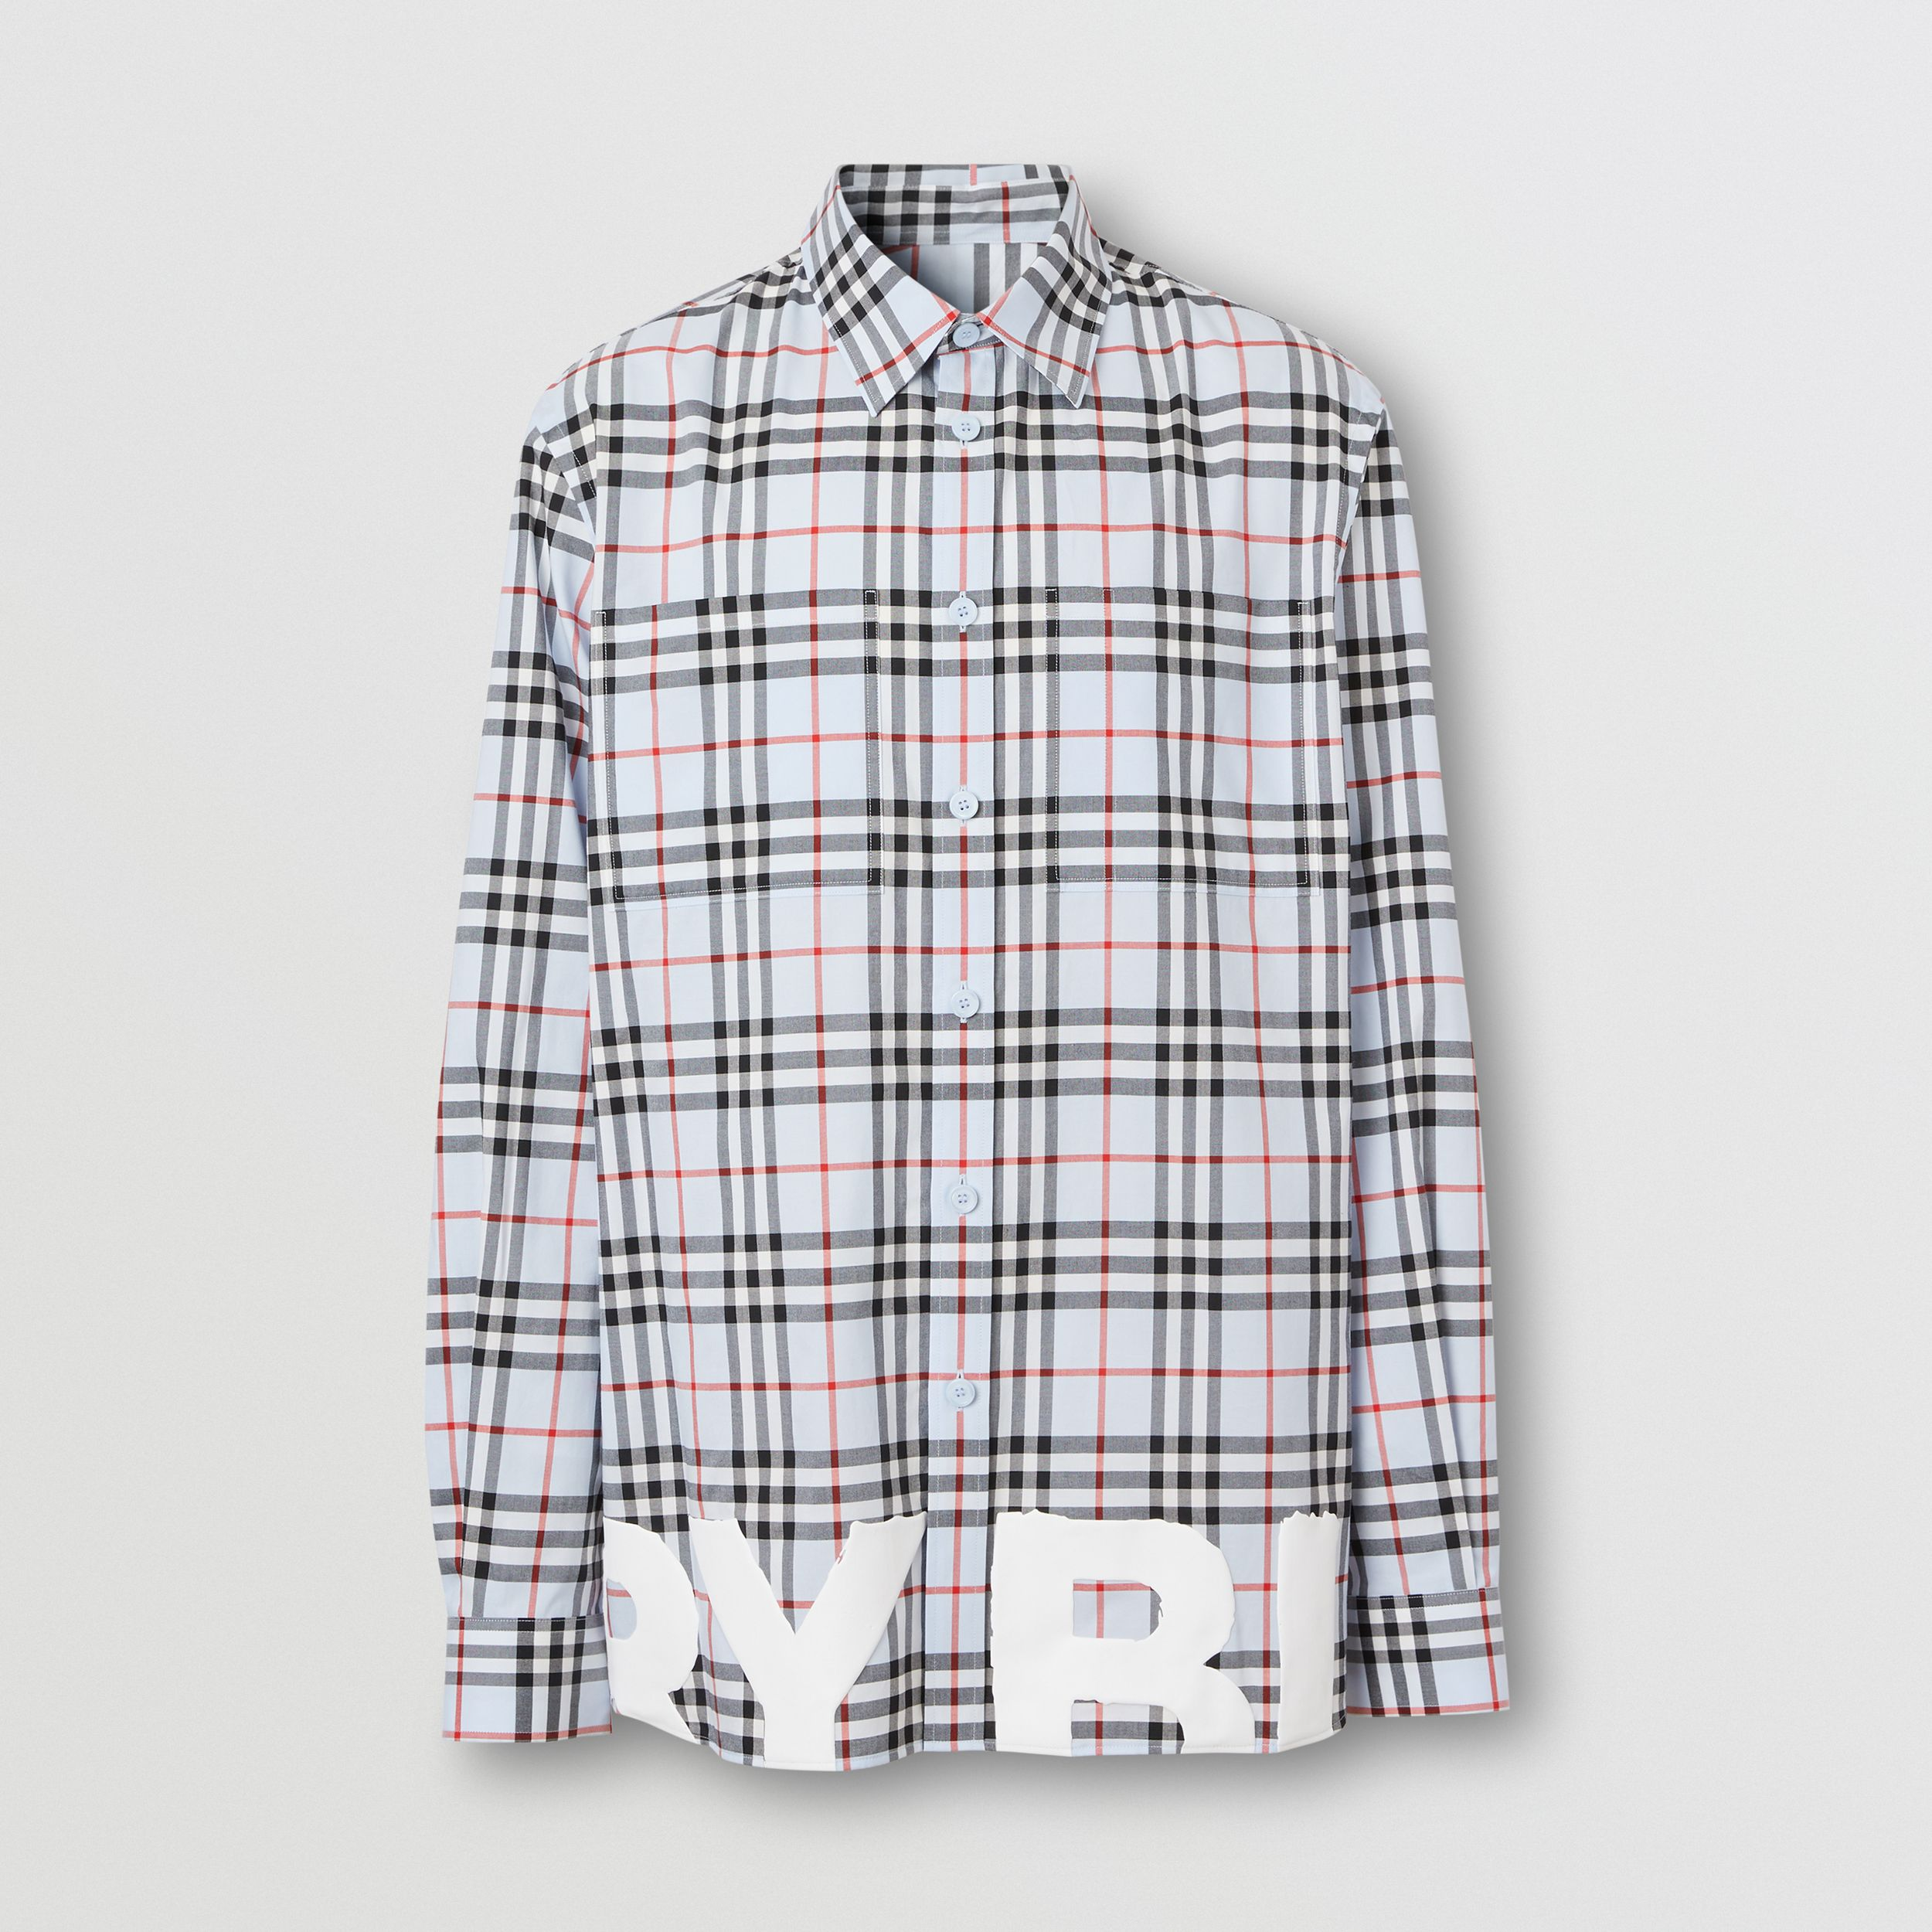 Logo Print Vintage Check Cotton Oversized Shirt – Online Exclusive in Pale Blue - Men | Burberry United Kingdom - 4